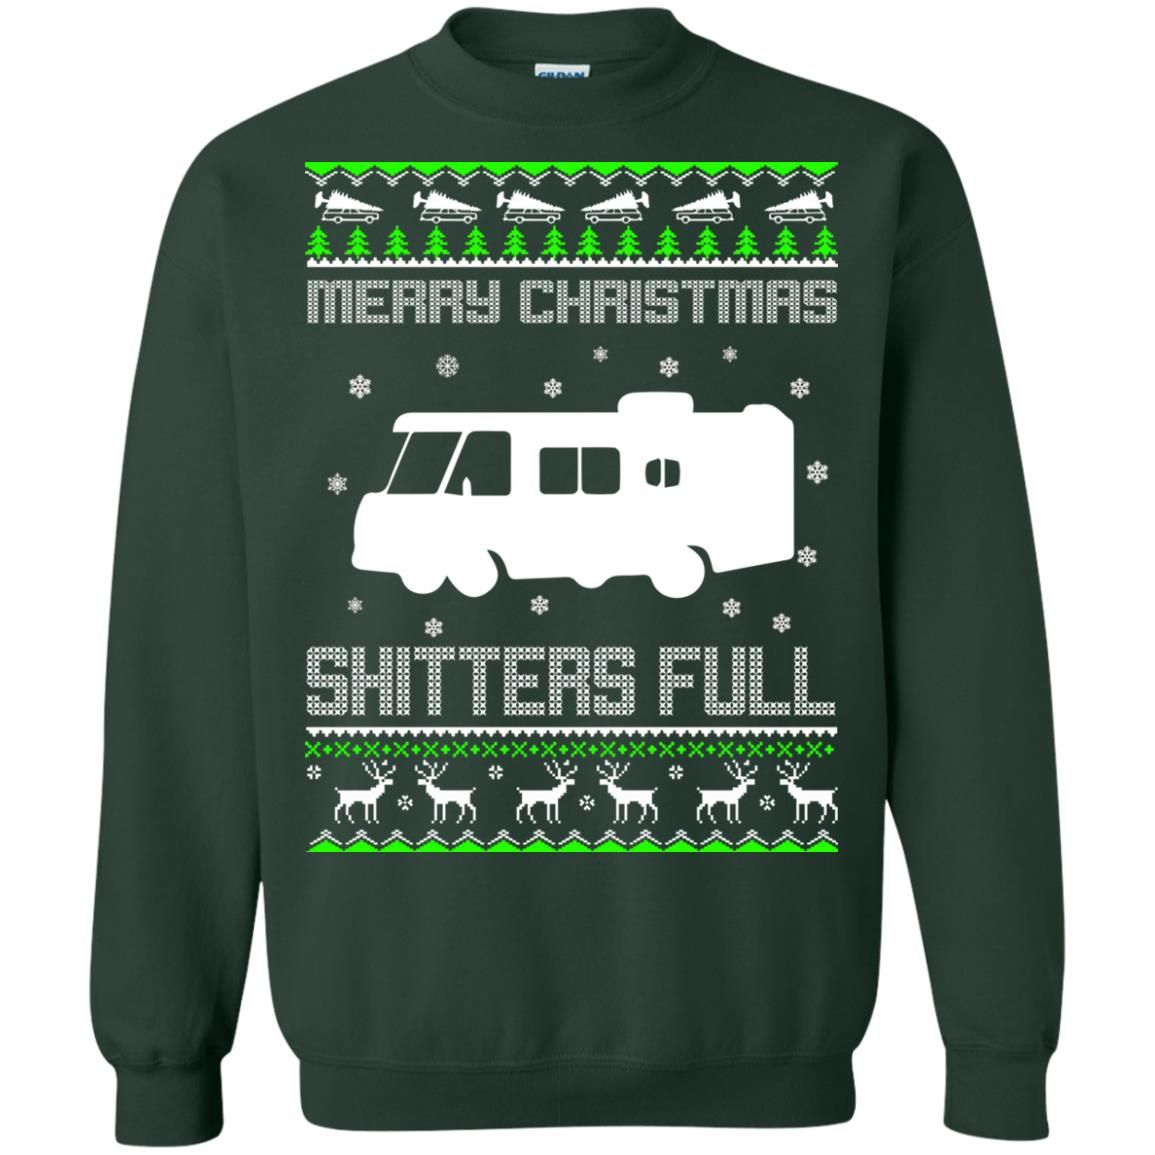 image 1574 - Christmas Vacation: Merry Christmas Shitter's full ugly sweater, hoodie